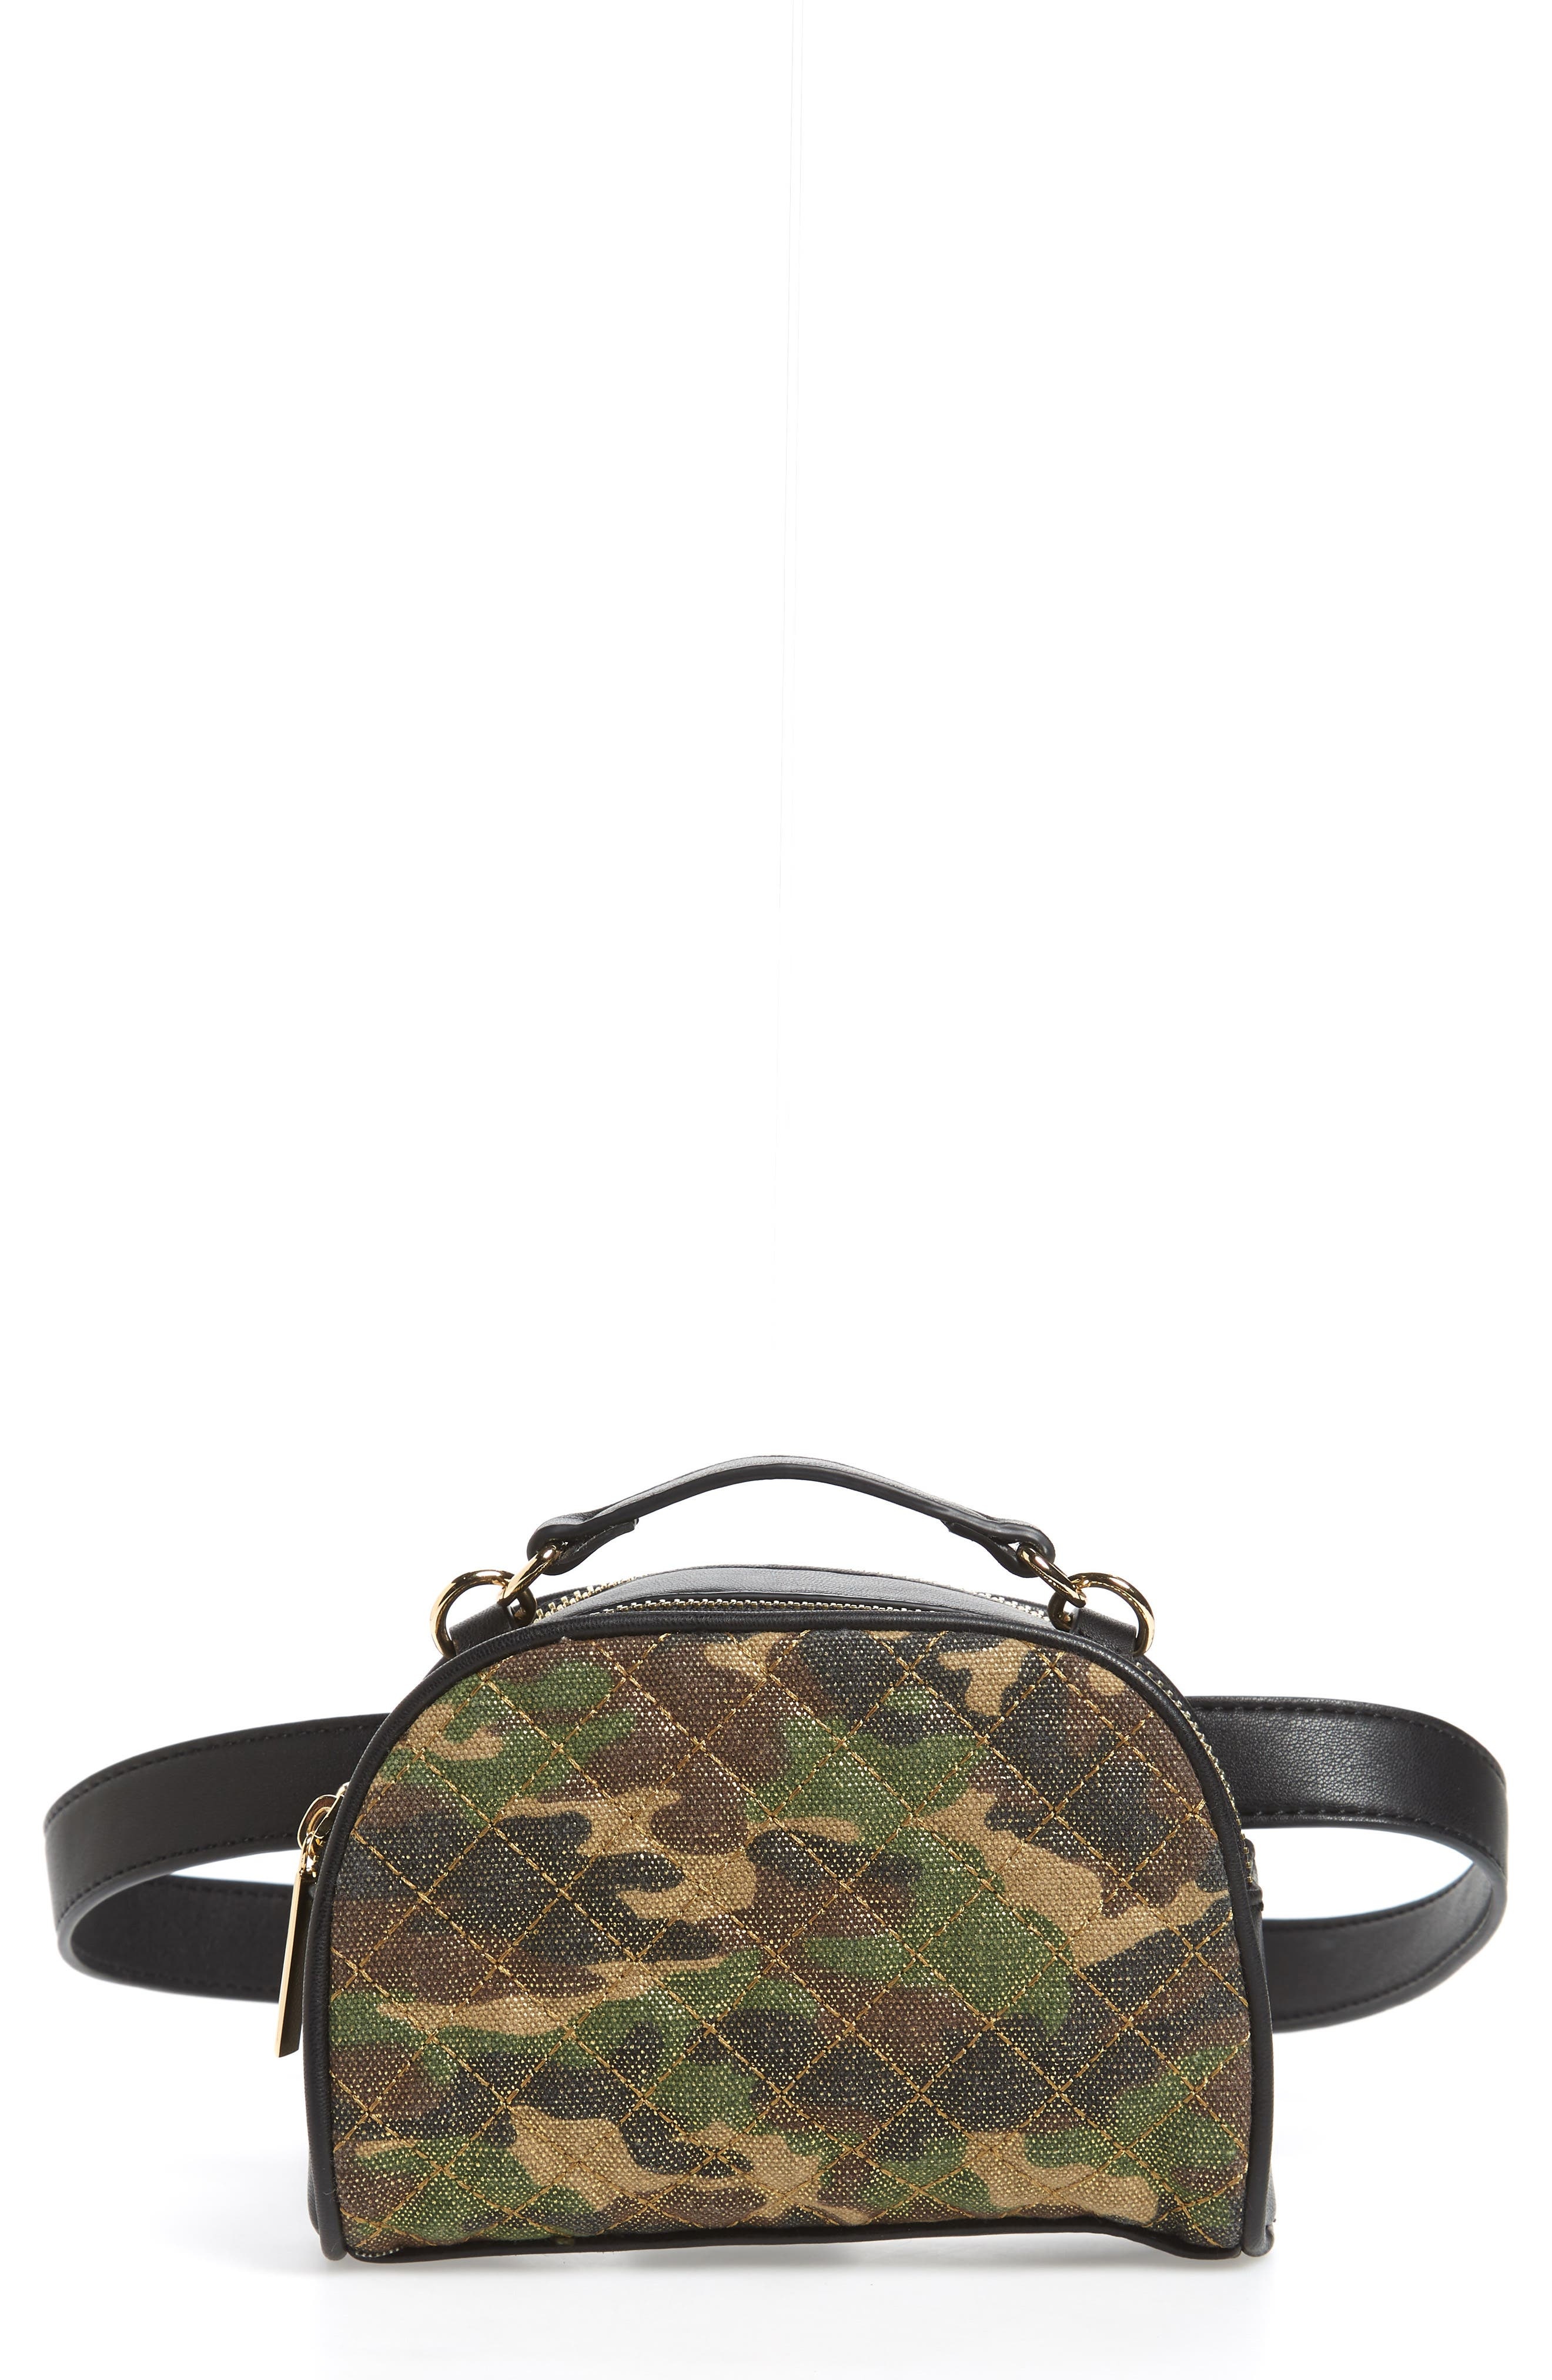 Mali + Lili Quilted Camouflage Belt Bag,                         Main,                         color, 340